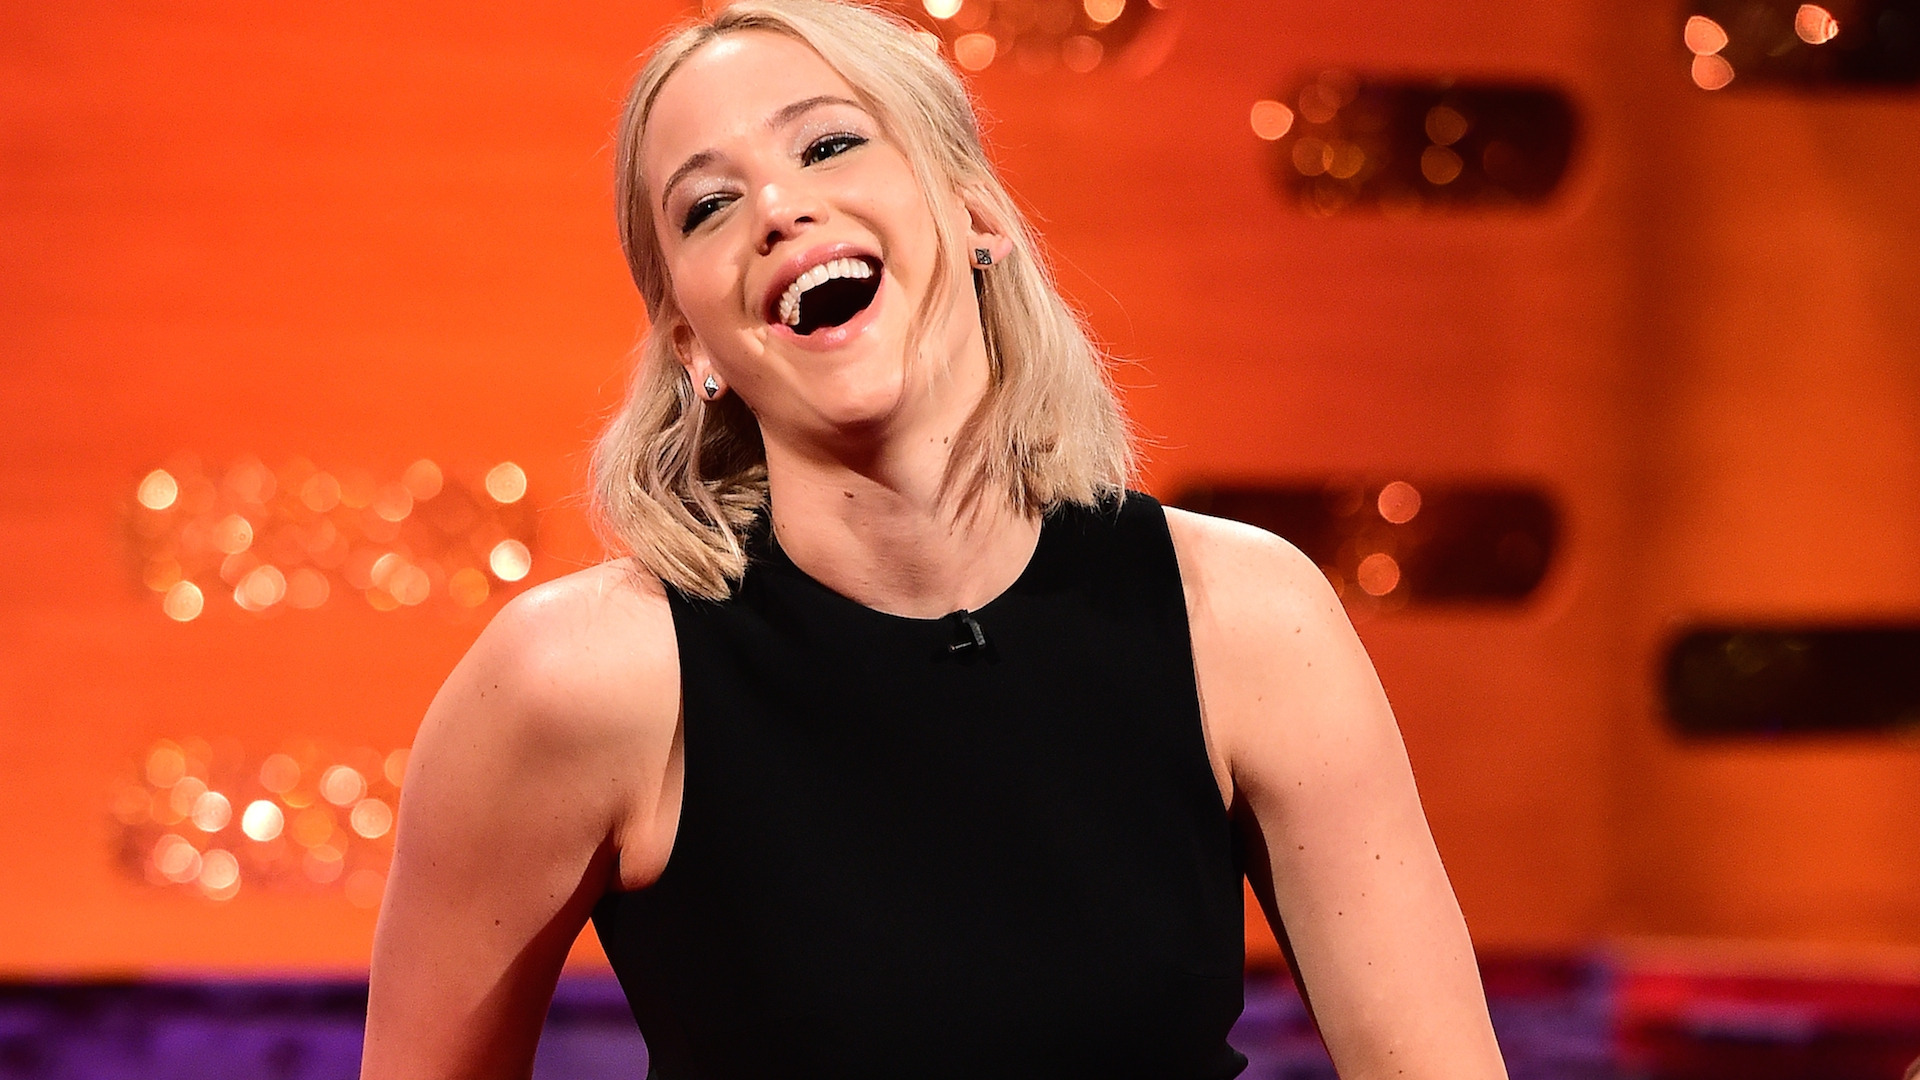 The Graham Norton Show - London. Jennifer Lawrence during filming at the London Studios, London of The Graham Norton Show which is due to be transmitted on December 31 at 2245. Picture date: Thursday December 17 2015. Photo credit should read: PA Images on behalf of So TV. URN:25122688